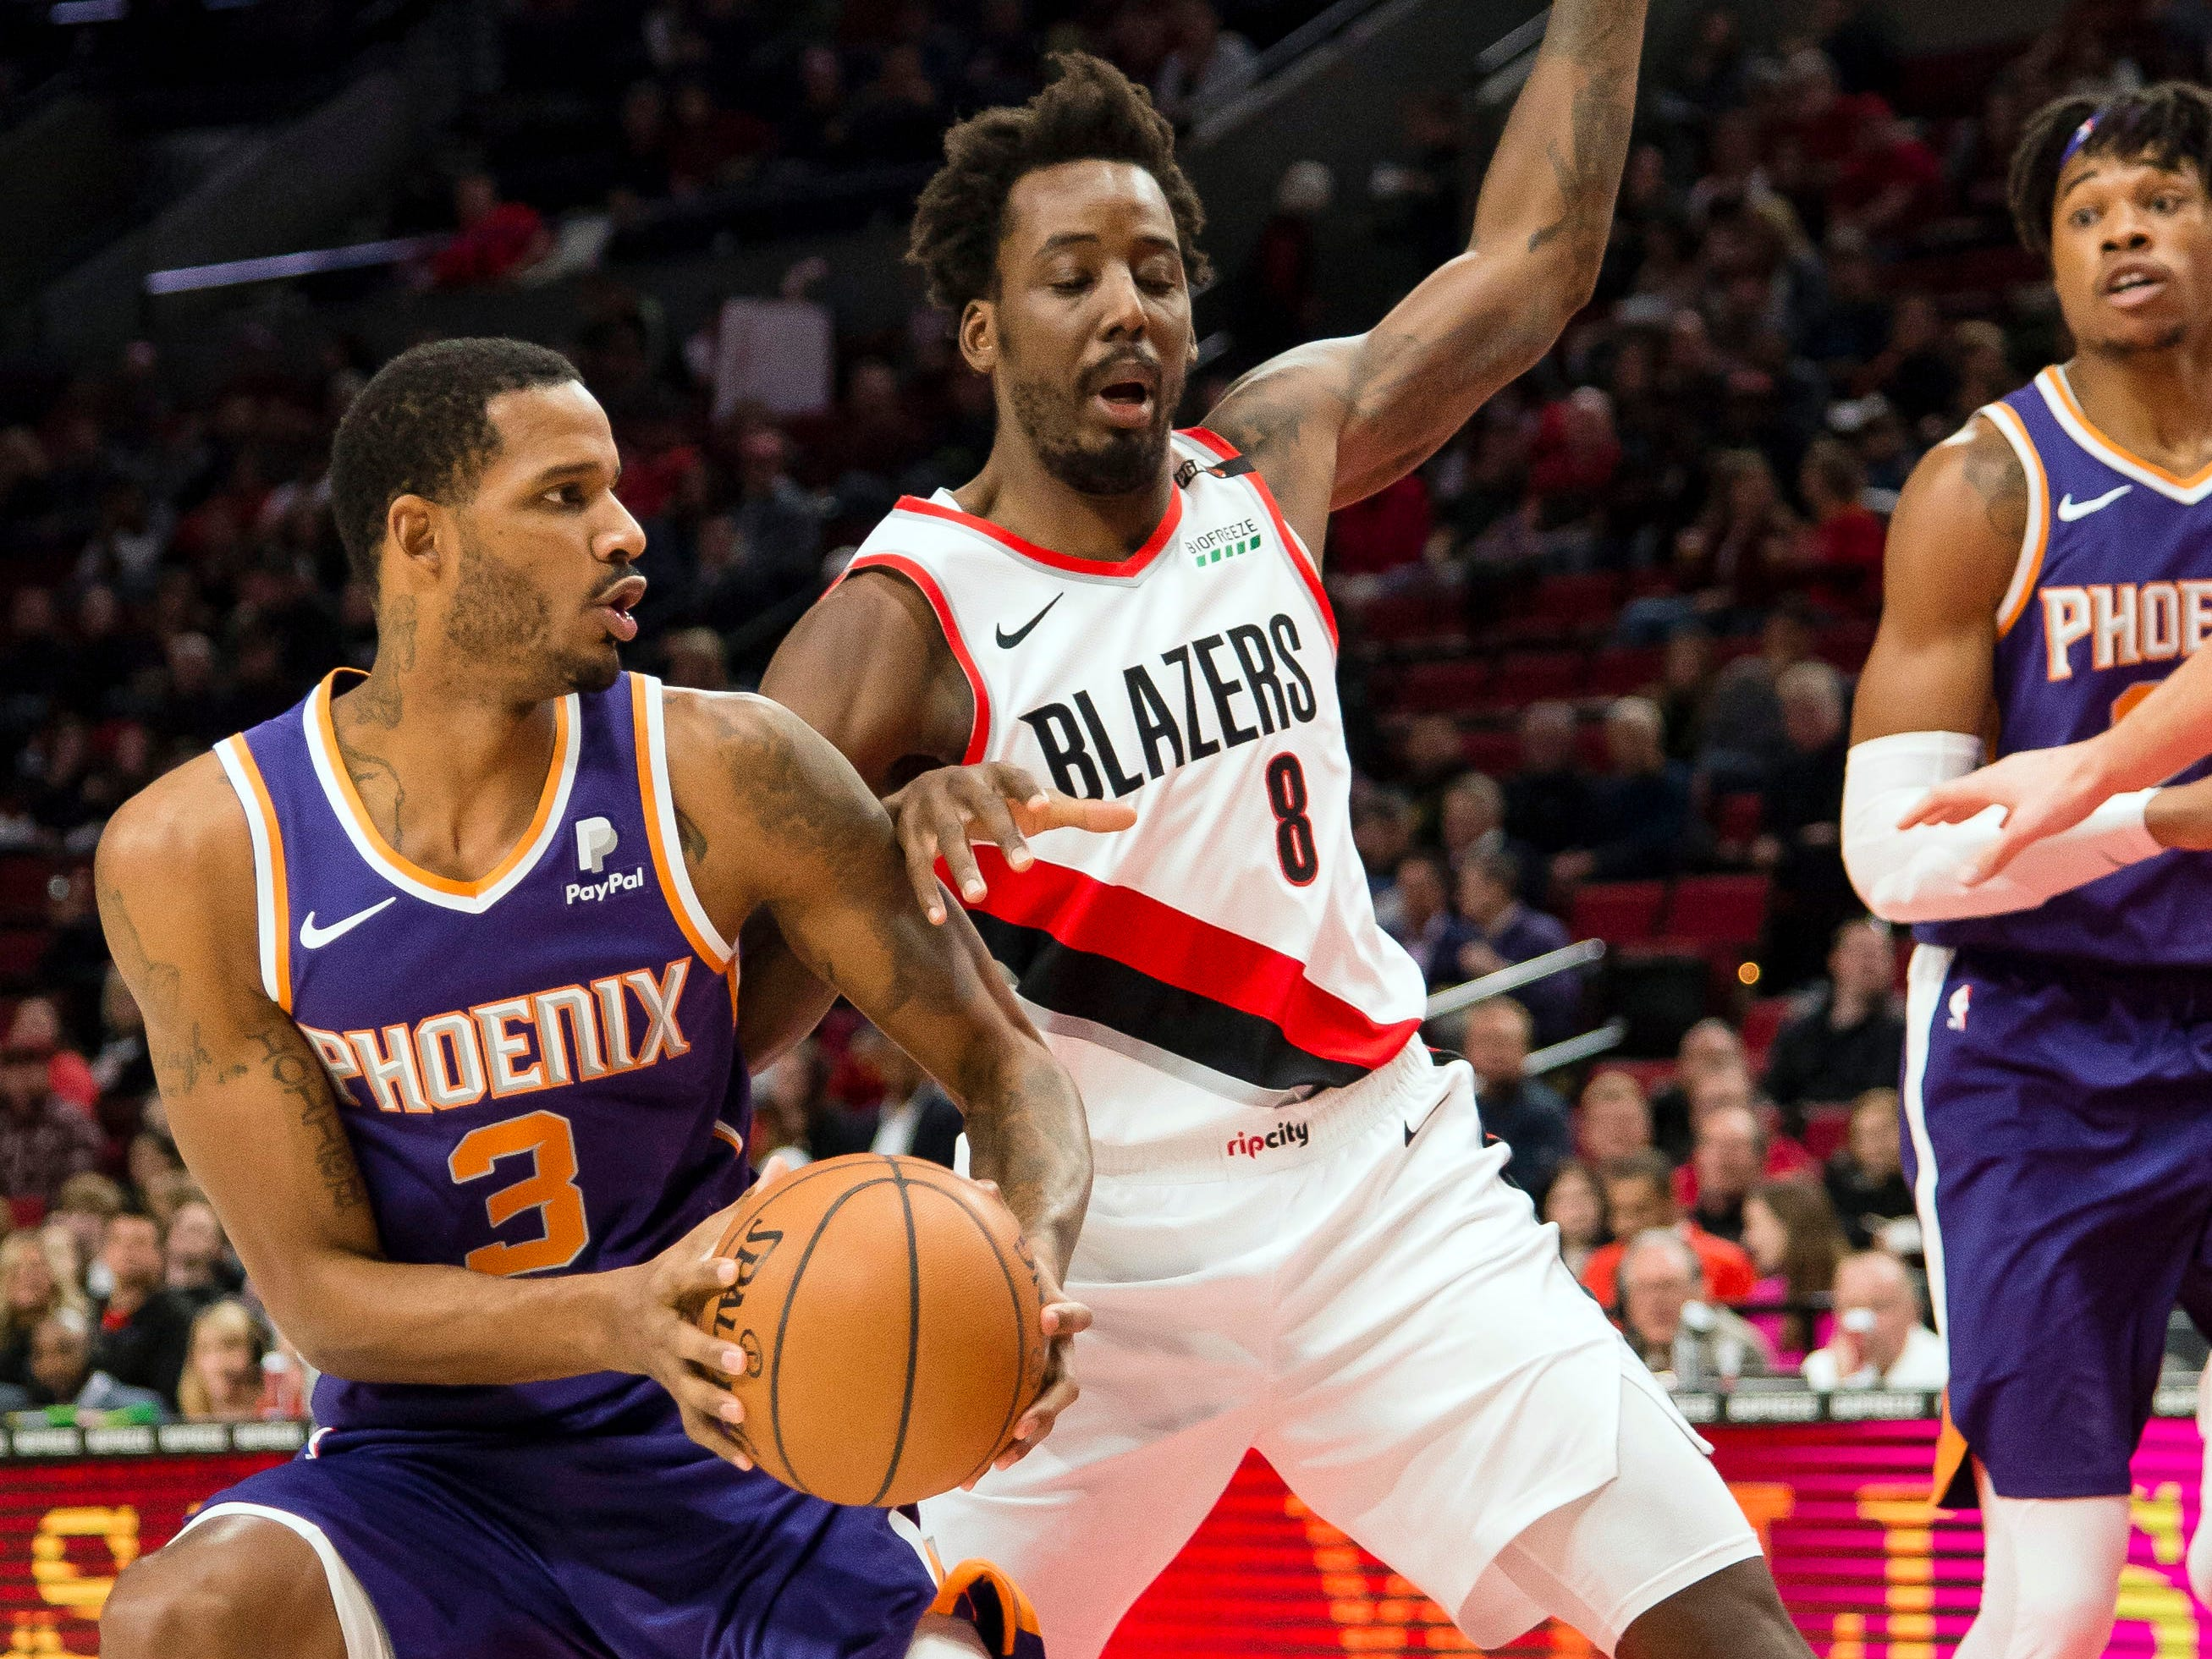 Dec 6, 2018; Portland, OR, USA; Phoenix Suns forward Trevor Ariza (3) stops to shoot a basket against Portland Trail Blazers forward Al-Farouq Aminu (8) during the first half at Moda Center. Mandatory Credit: Troy Wayrynen-USA TODAY Sports